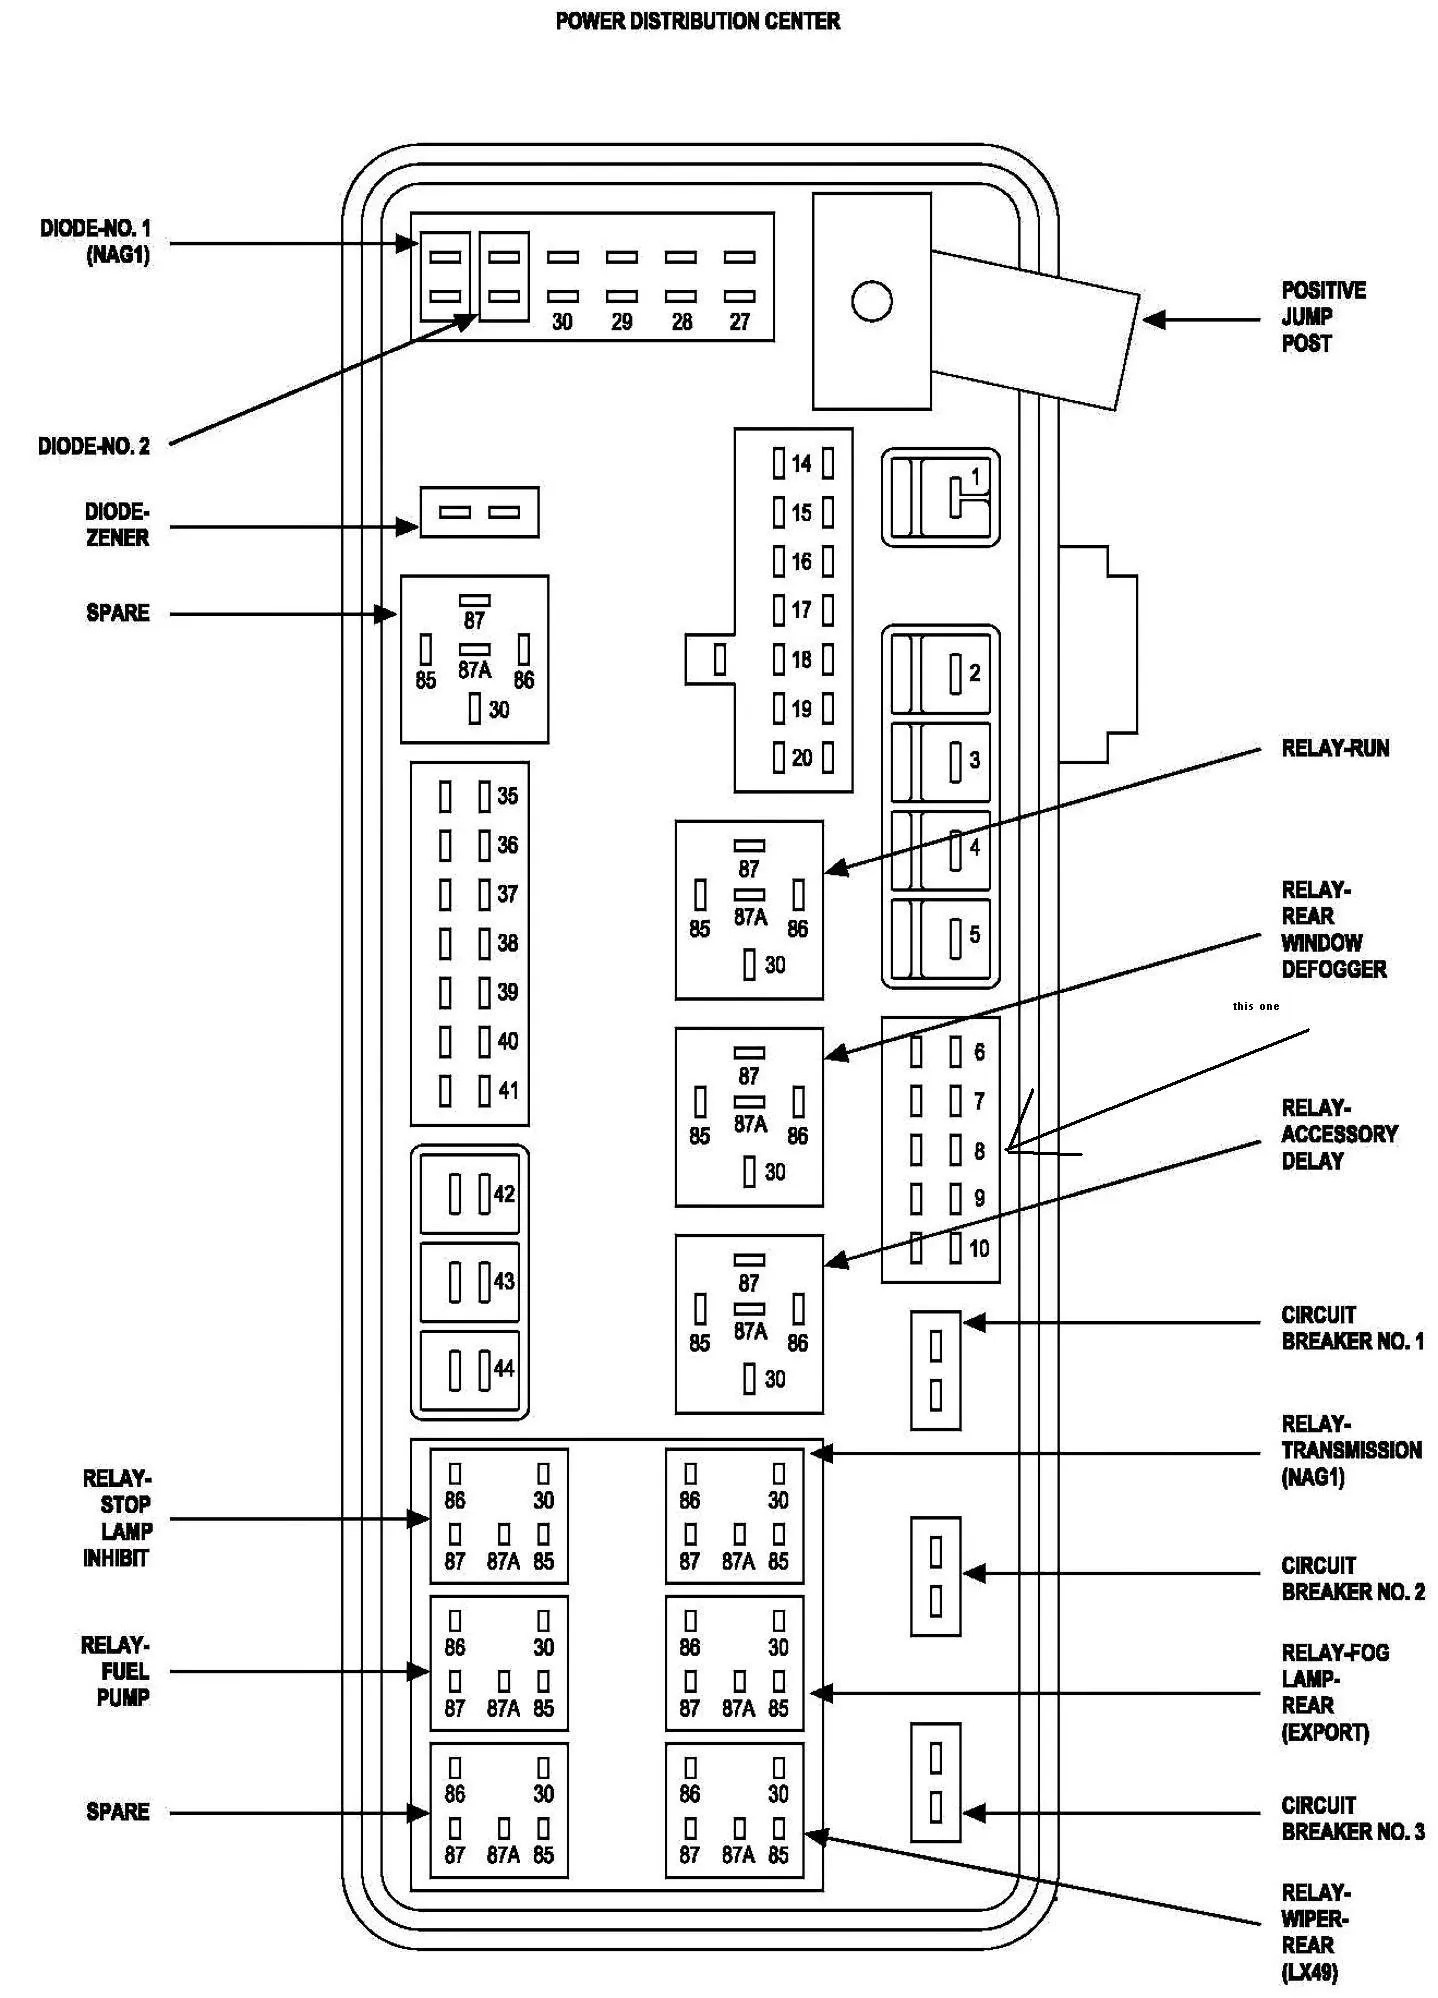 hight resolution of 2014 ram 1500 fuse diagram wiring diagram mega 2014 ram 1500 fuse box diagram